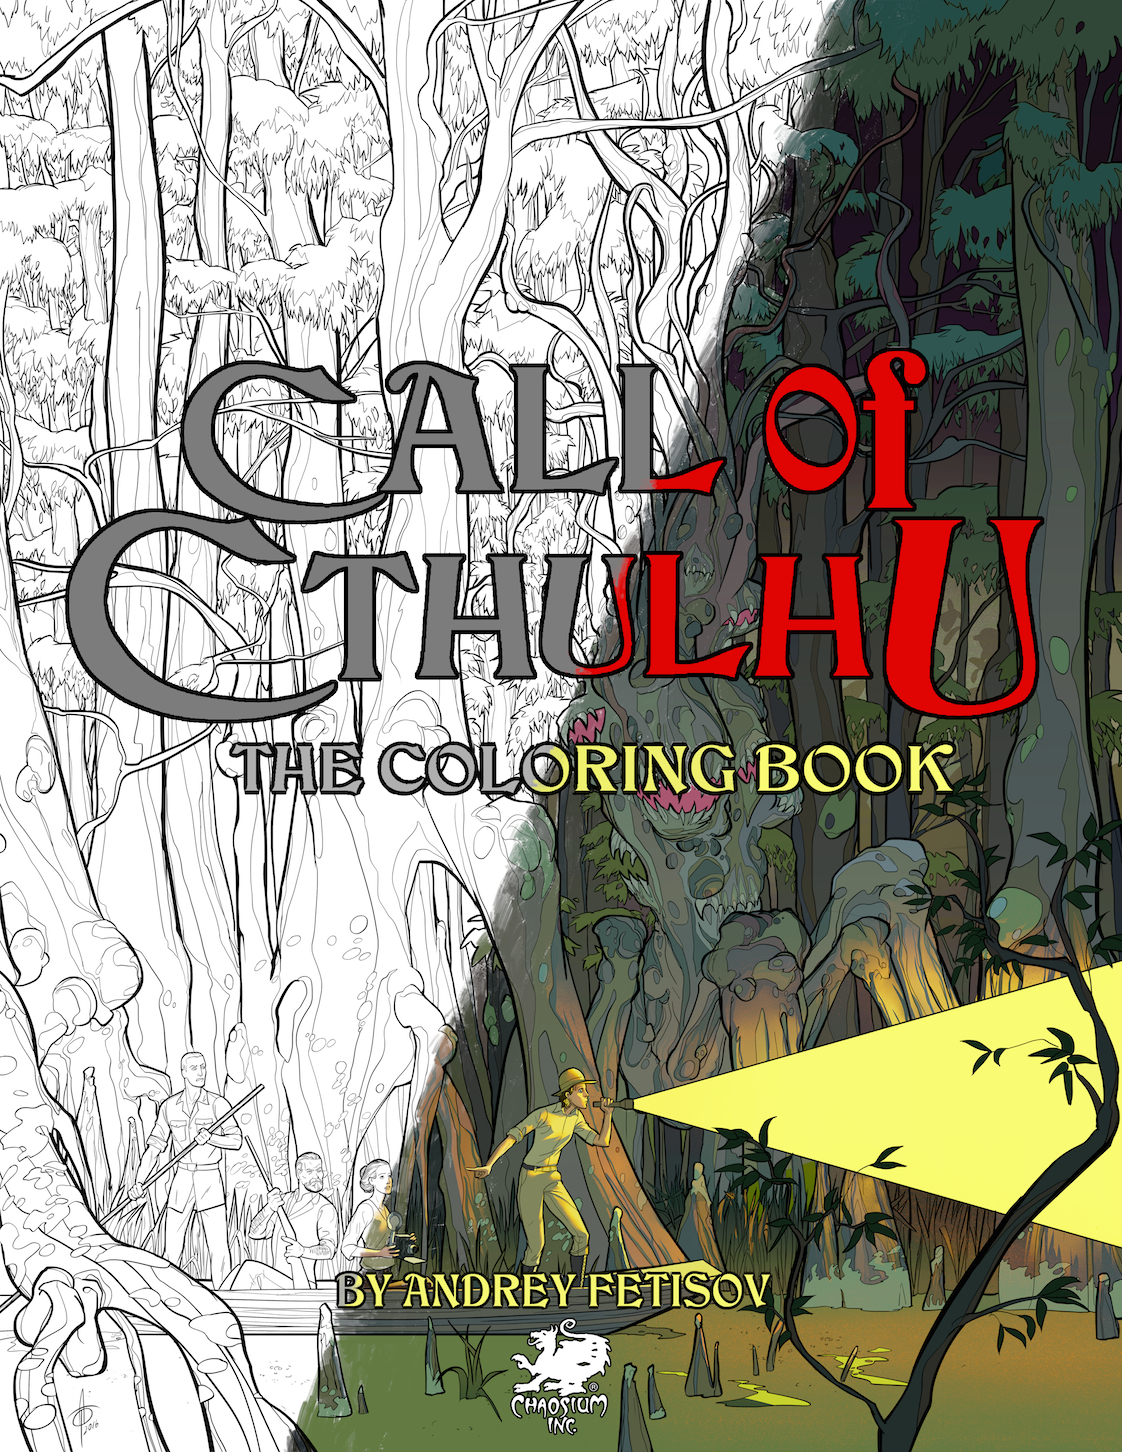 Call of Cthulhu—The Coloring Book features 28 eldritch scenes of ...